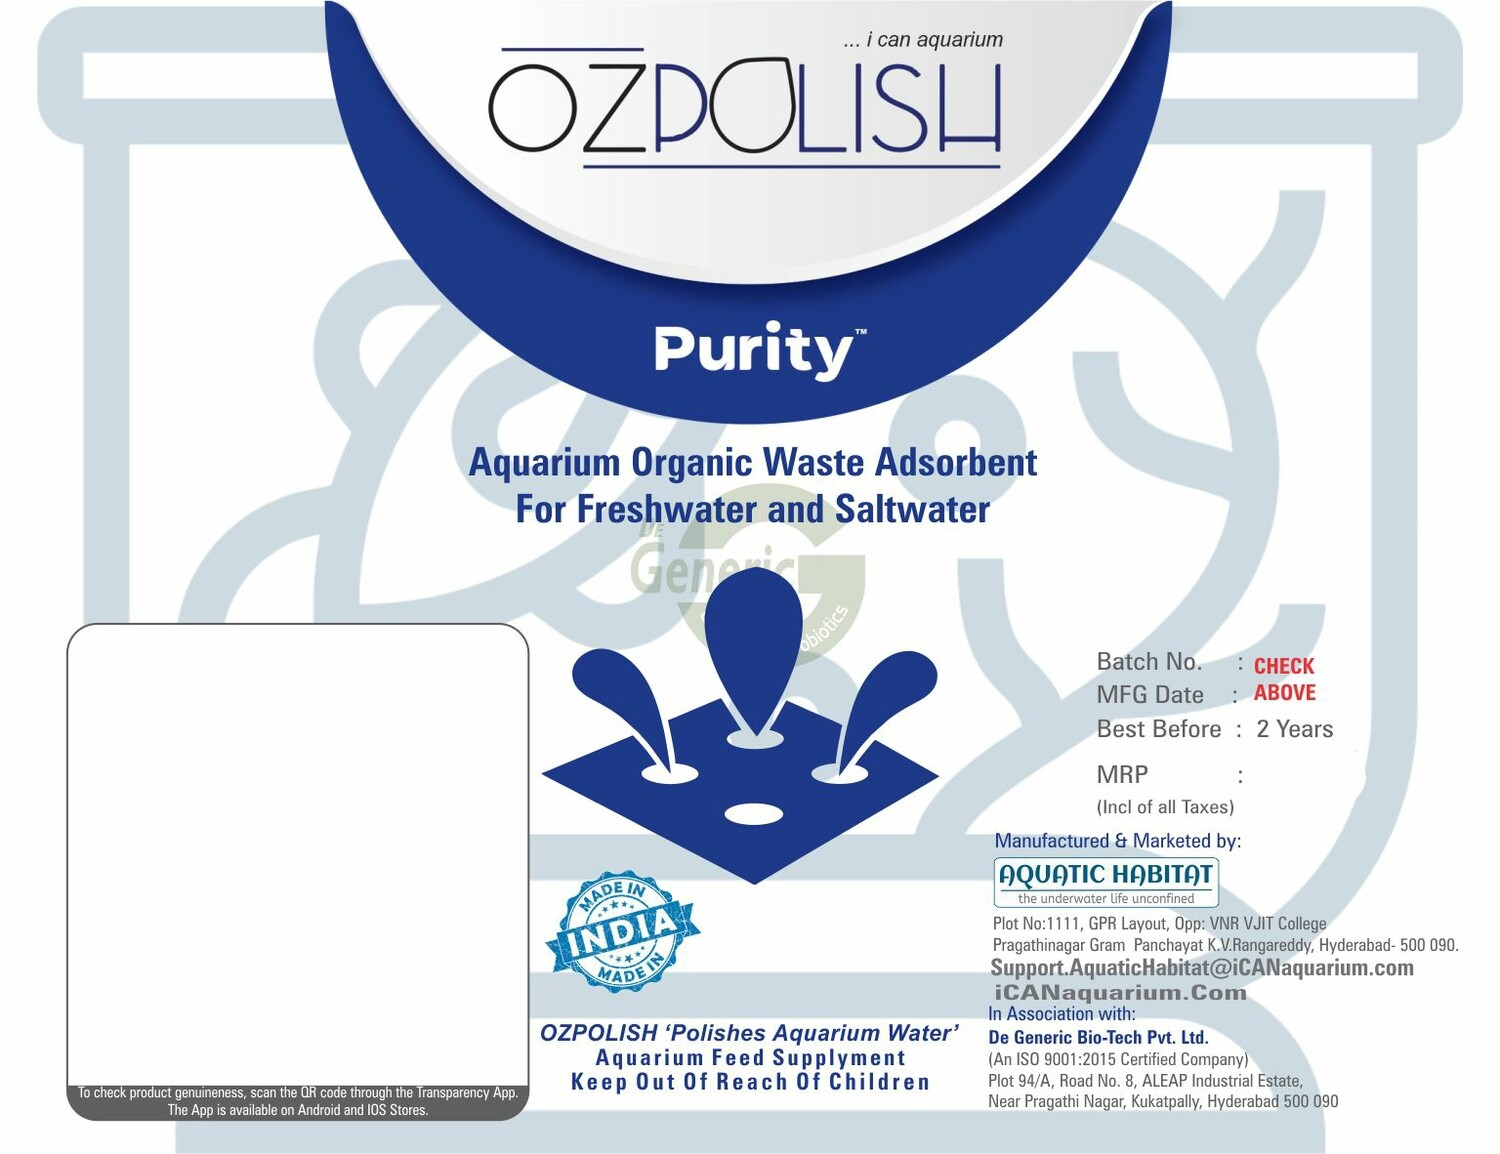 OZPOLISH Purity by Aquatic Habitat| Aquarium Water Cleaner |for Freshwater & Saltwater 2 * 50 gm Synthetic Adsorbent Media in Filter Bags